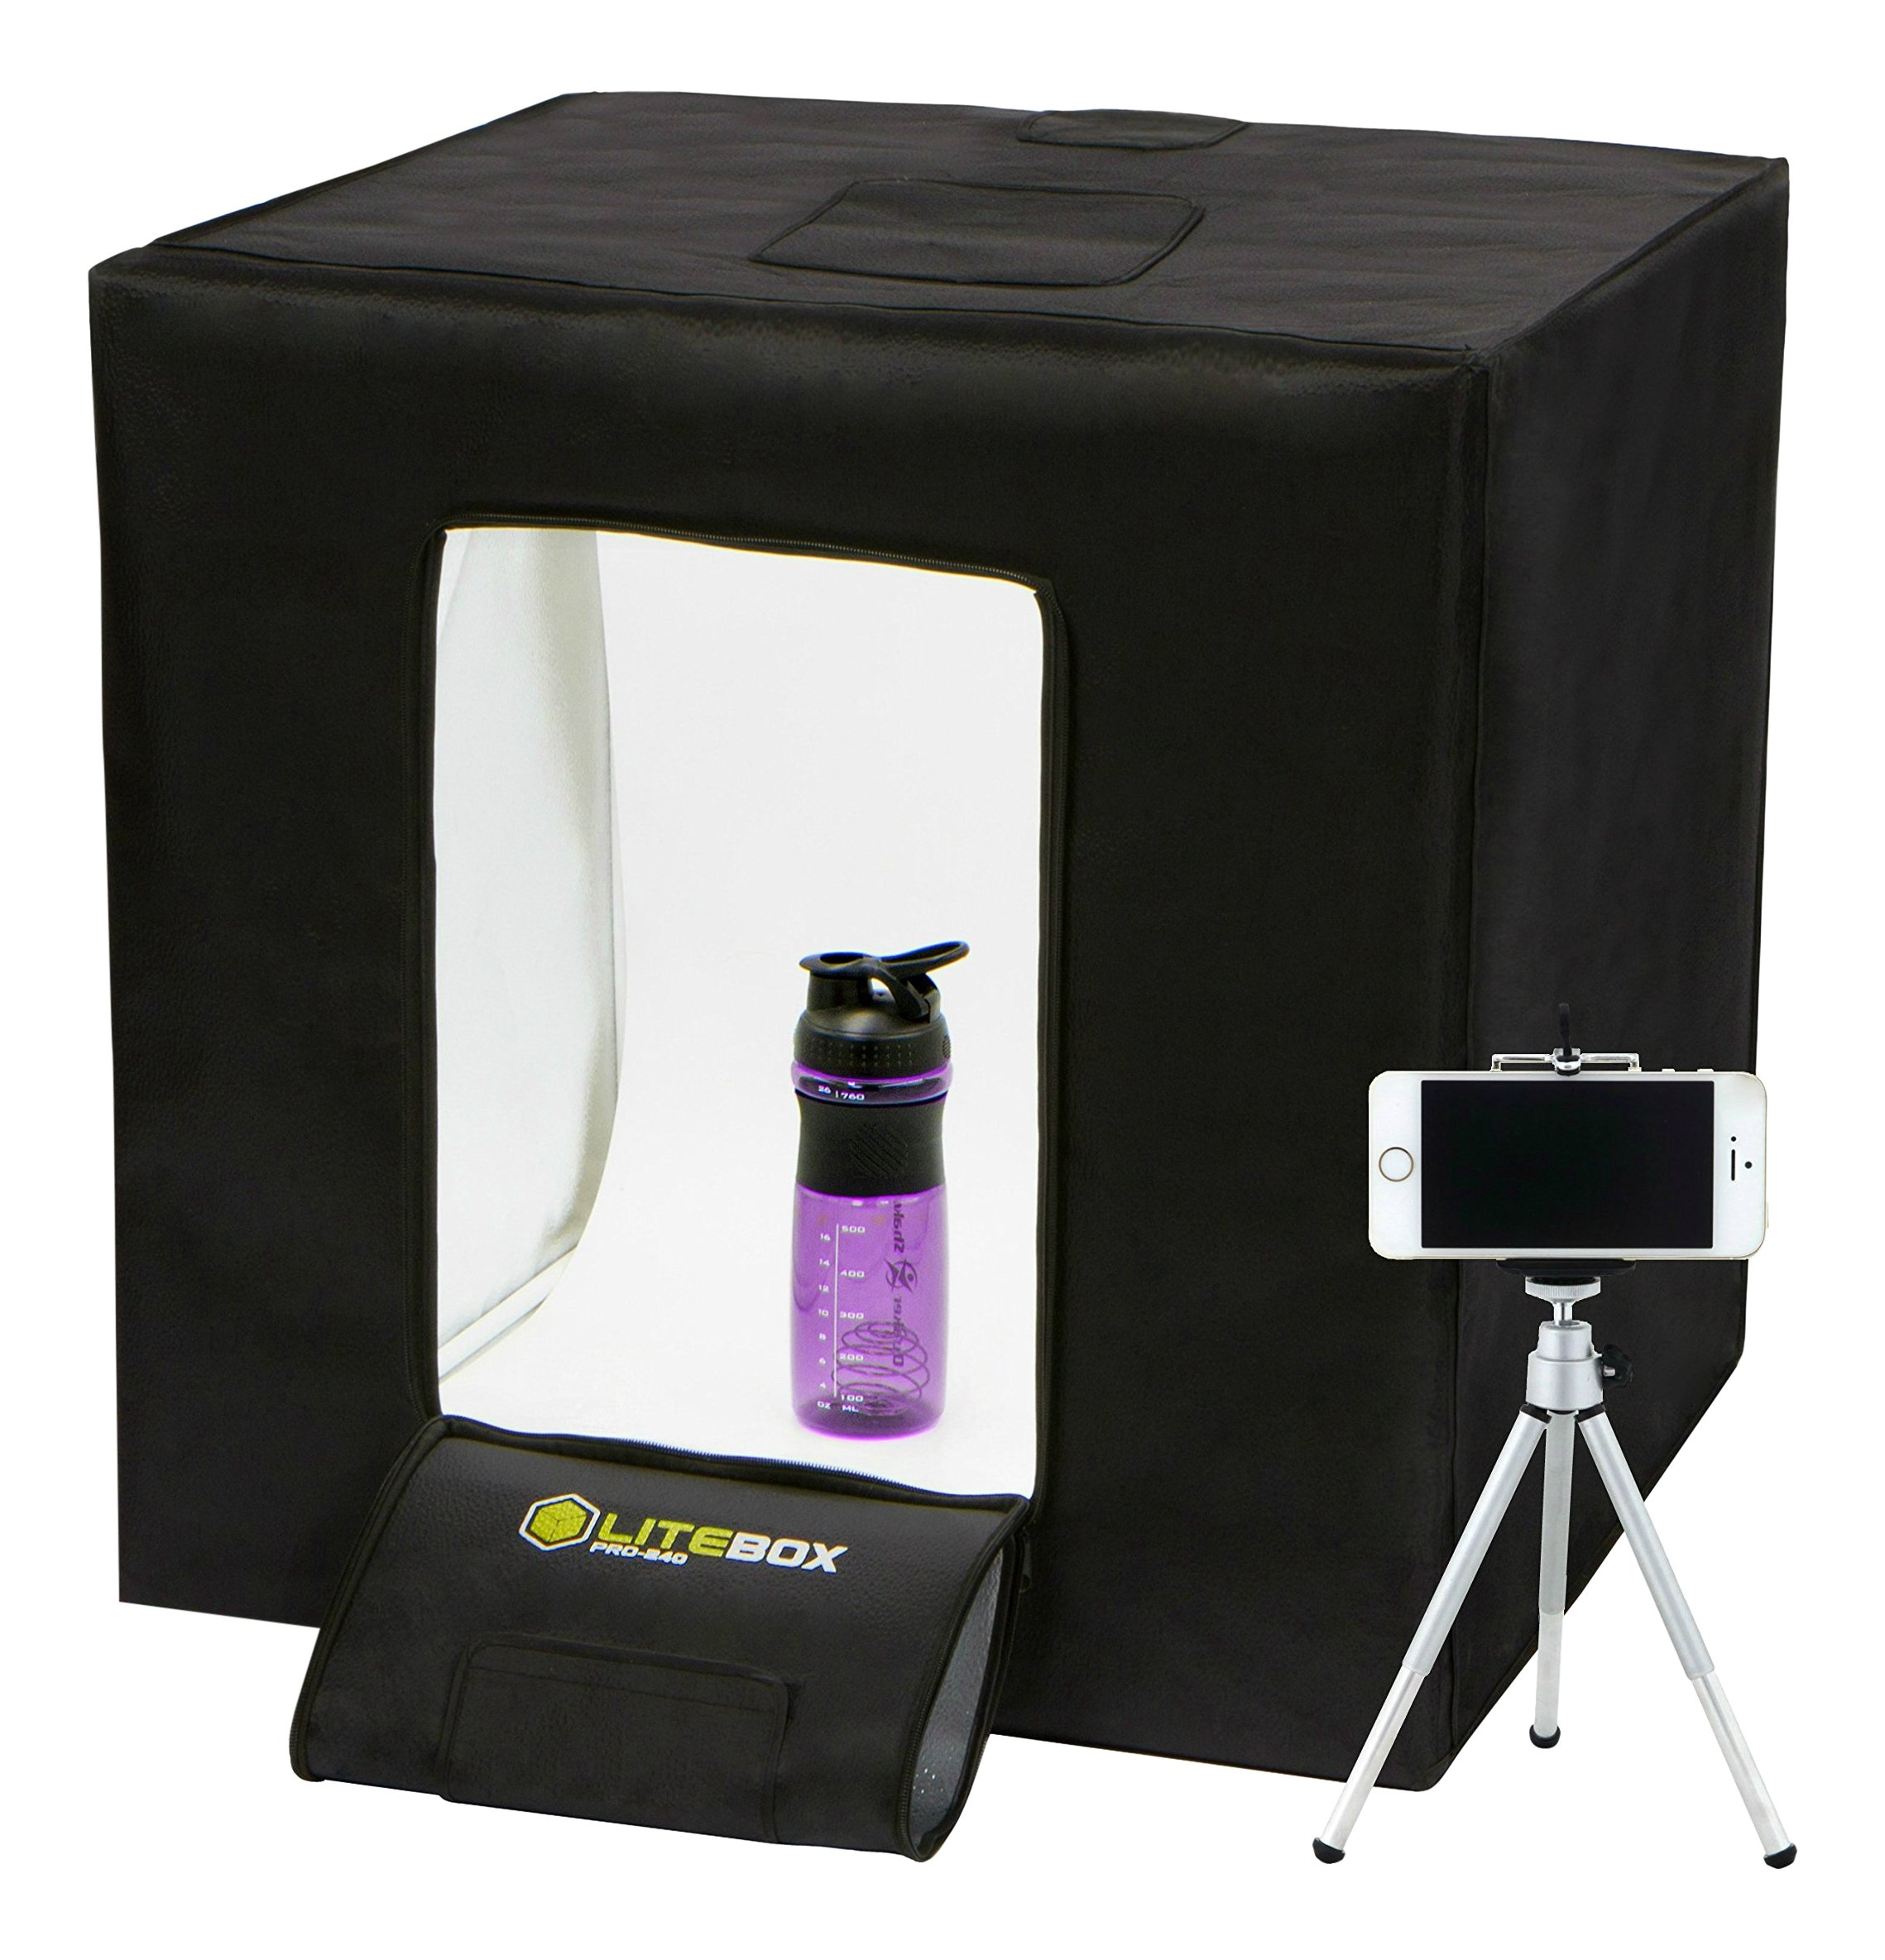 photography studio maxgear cam products lighting tent led light mini portable fordable room box